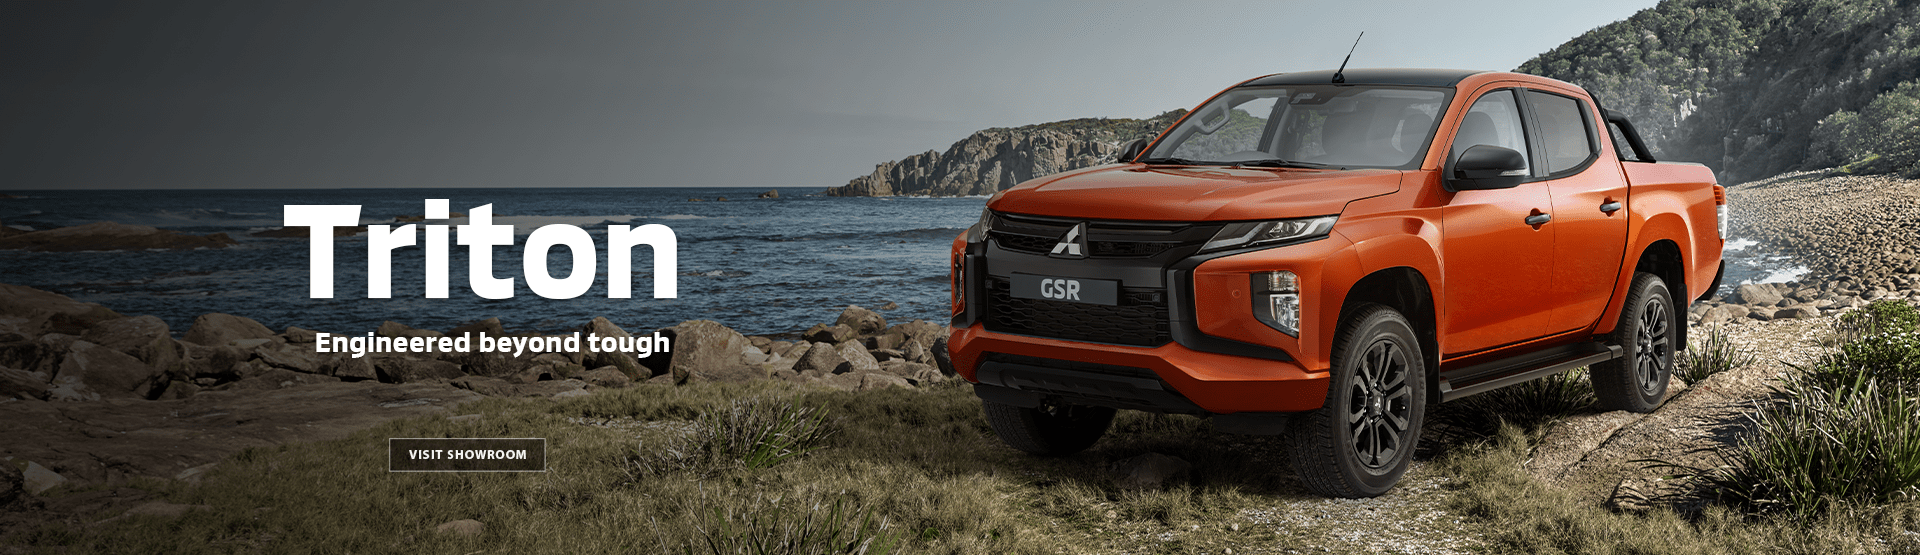 Mitsubishi Triton - Engineered beyond tough